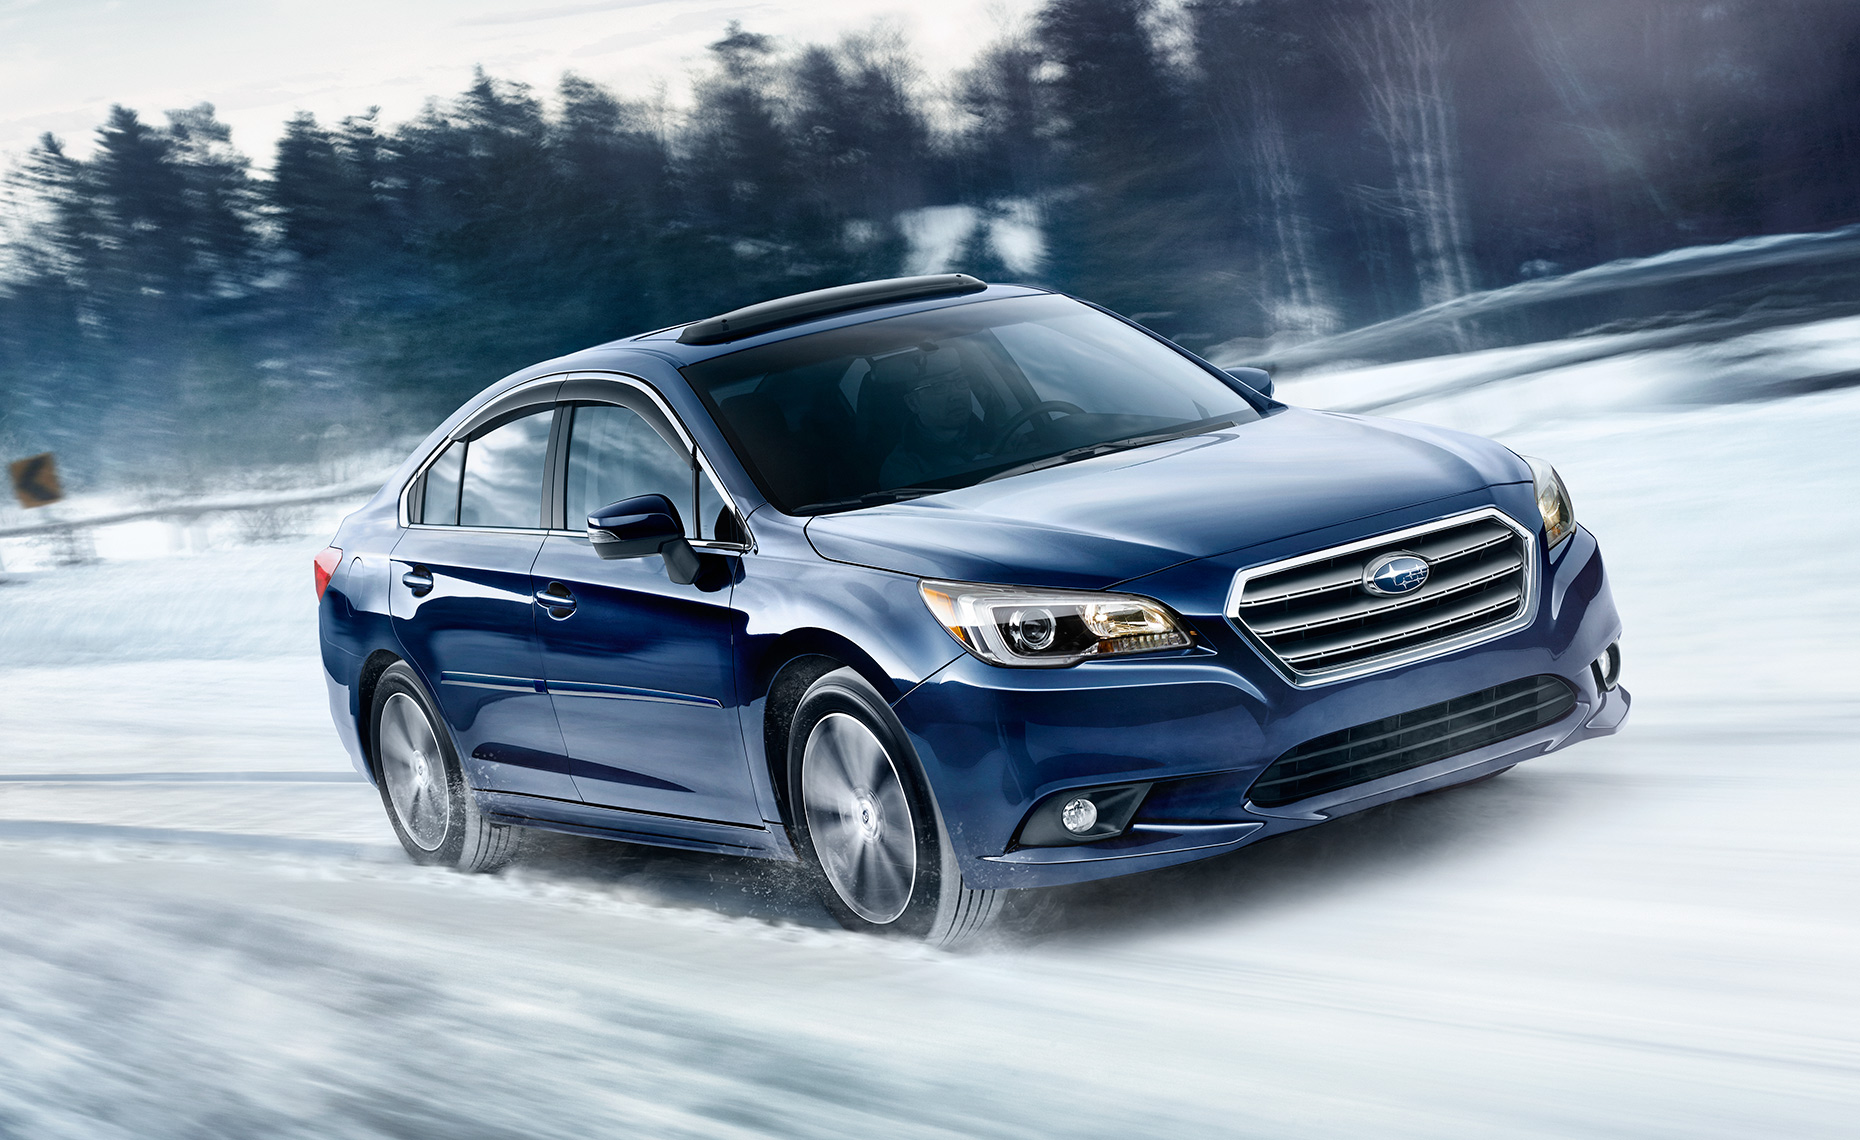 Subaru-Legacy-Snow-Action